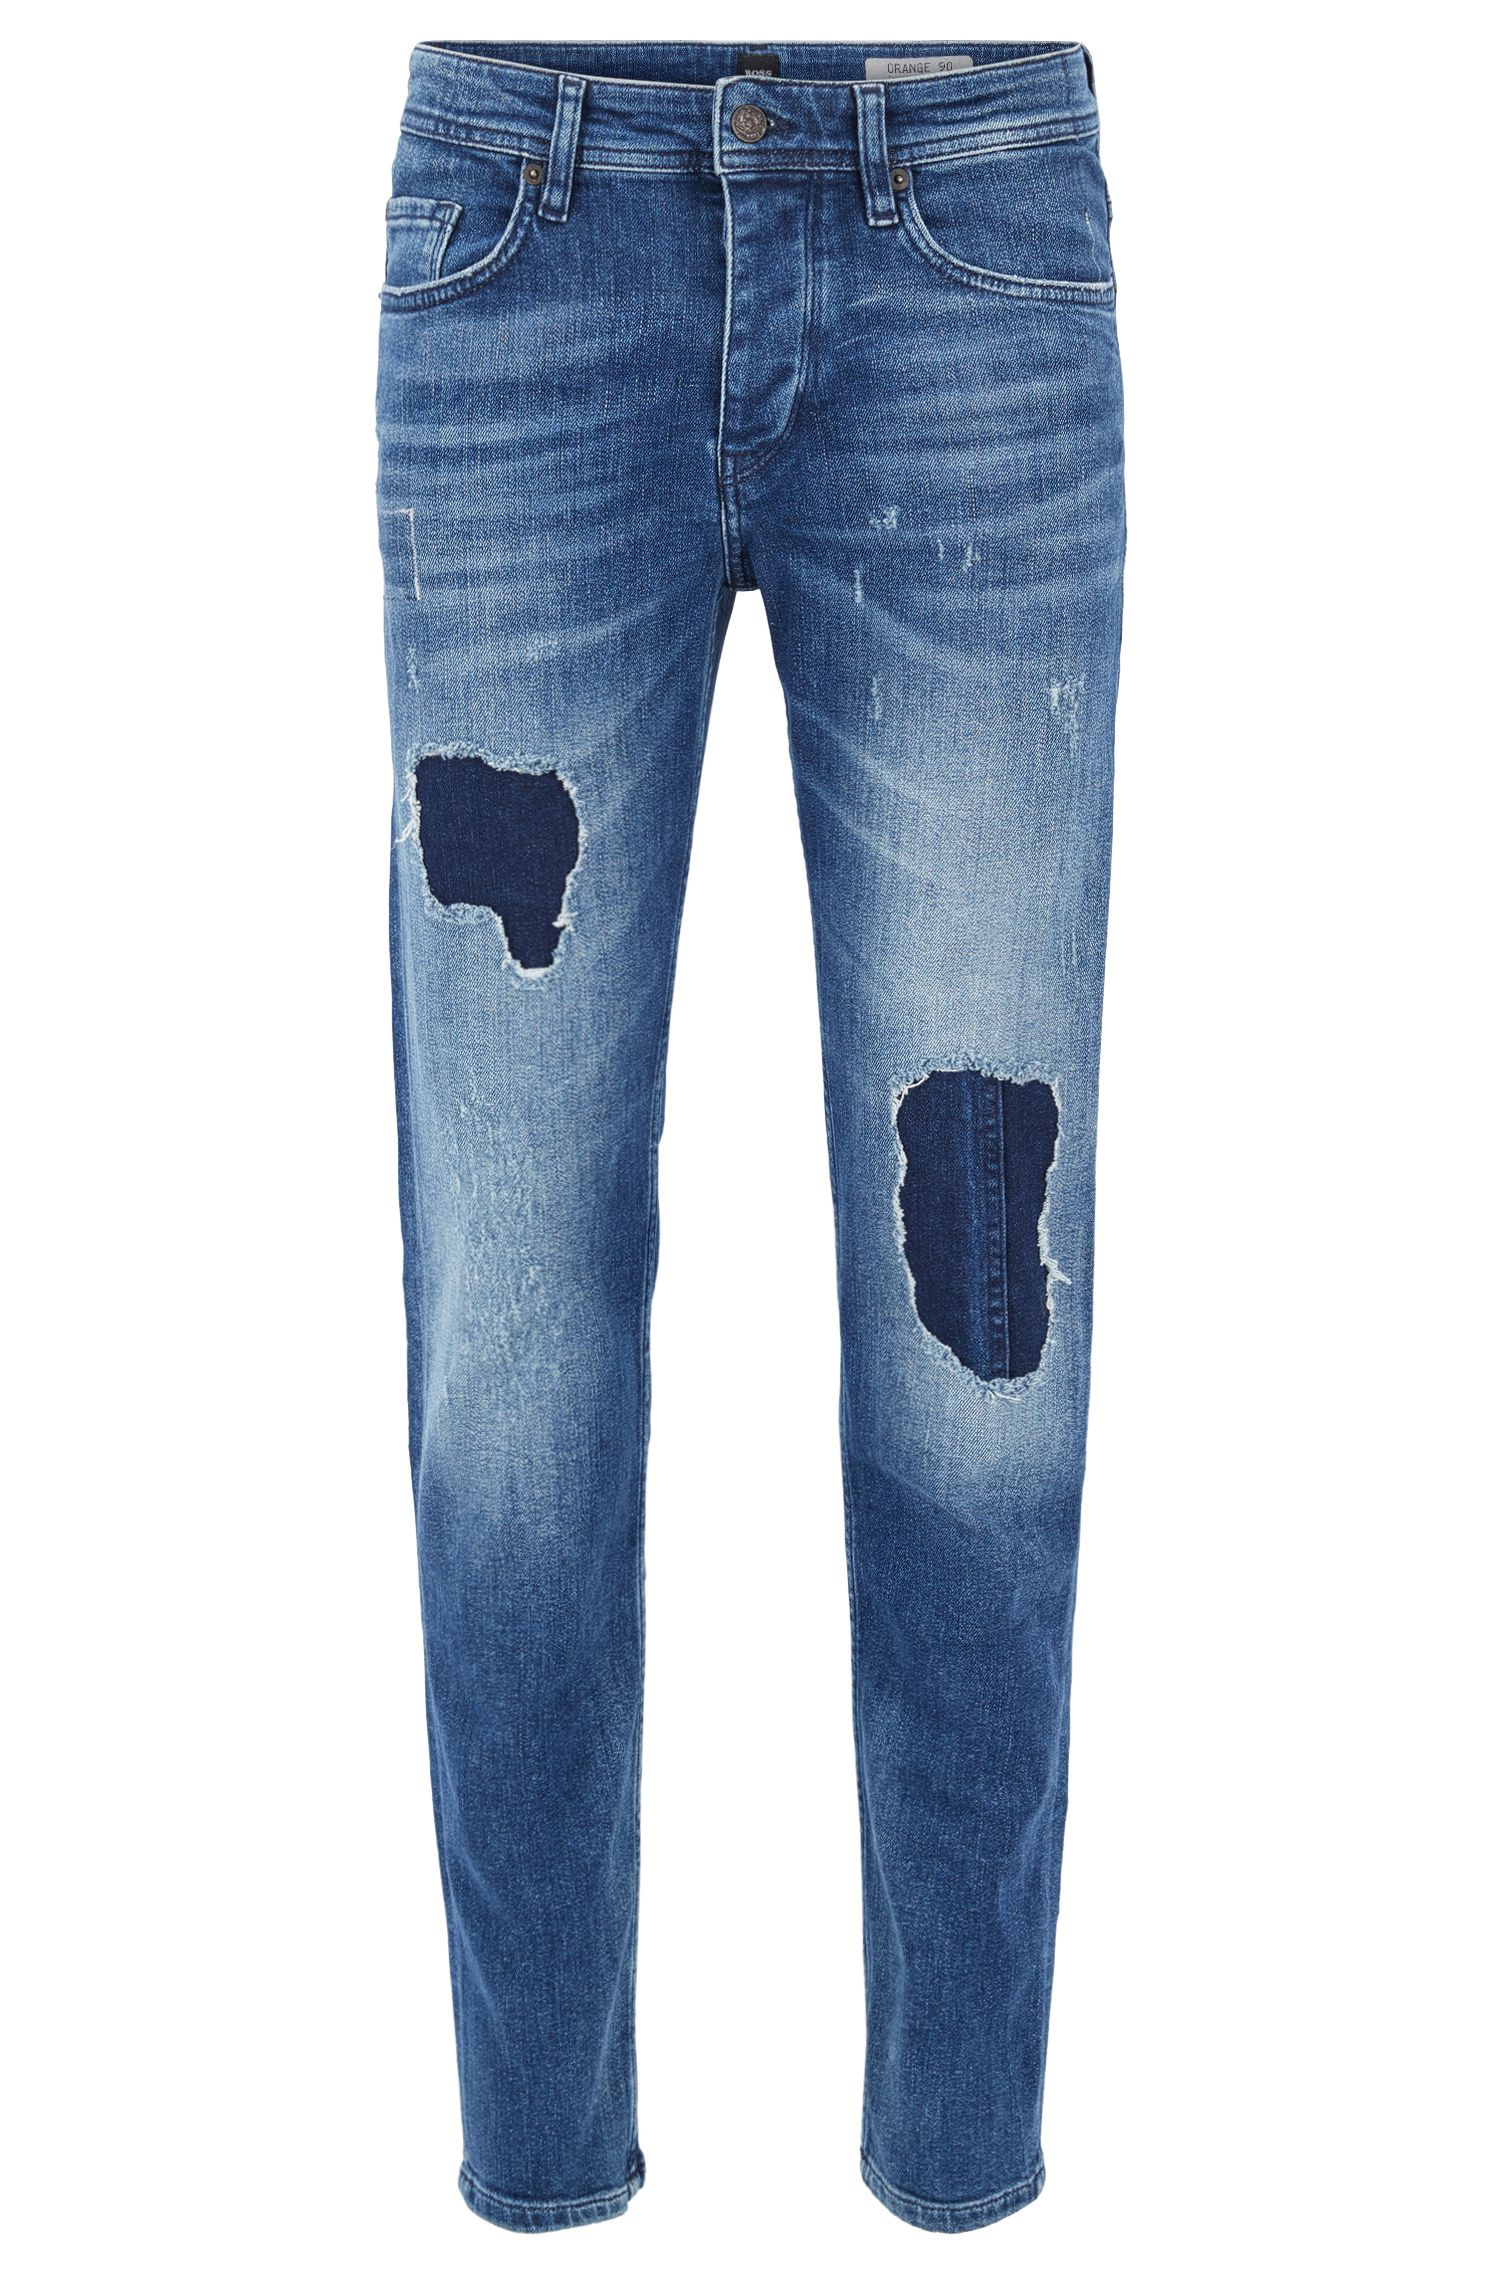 Vintage-blue tapered-fit stretch-denim jeans with destroyed effects